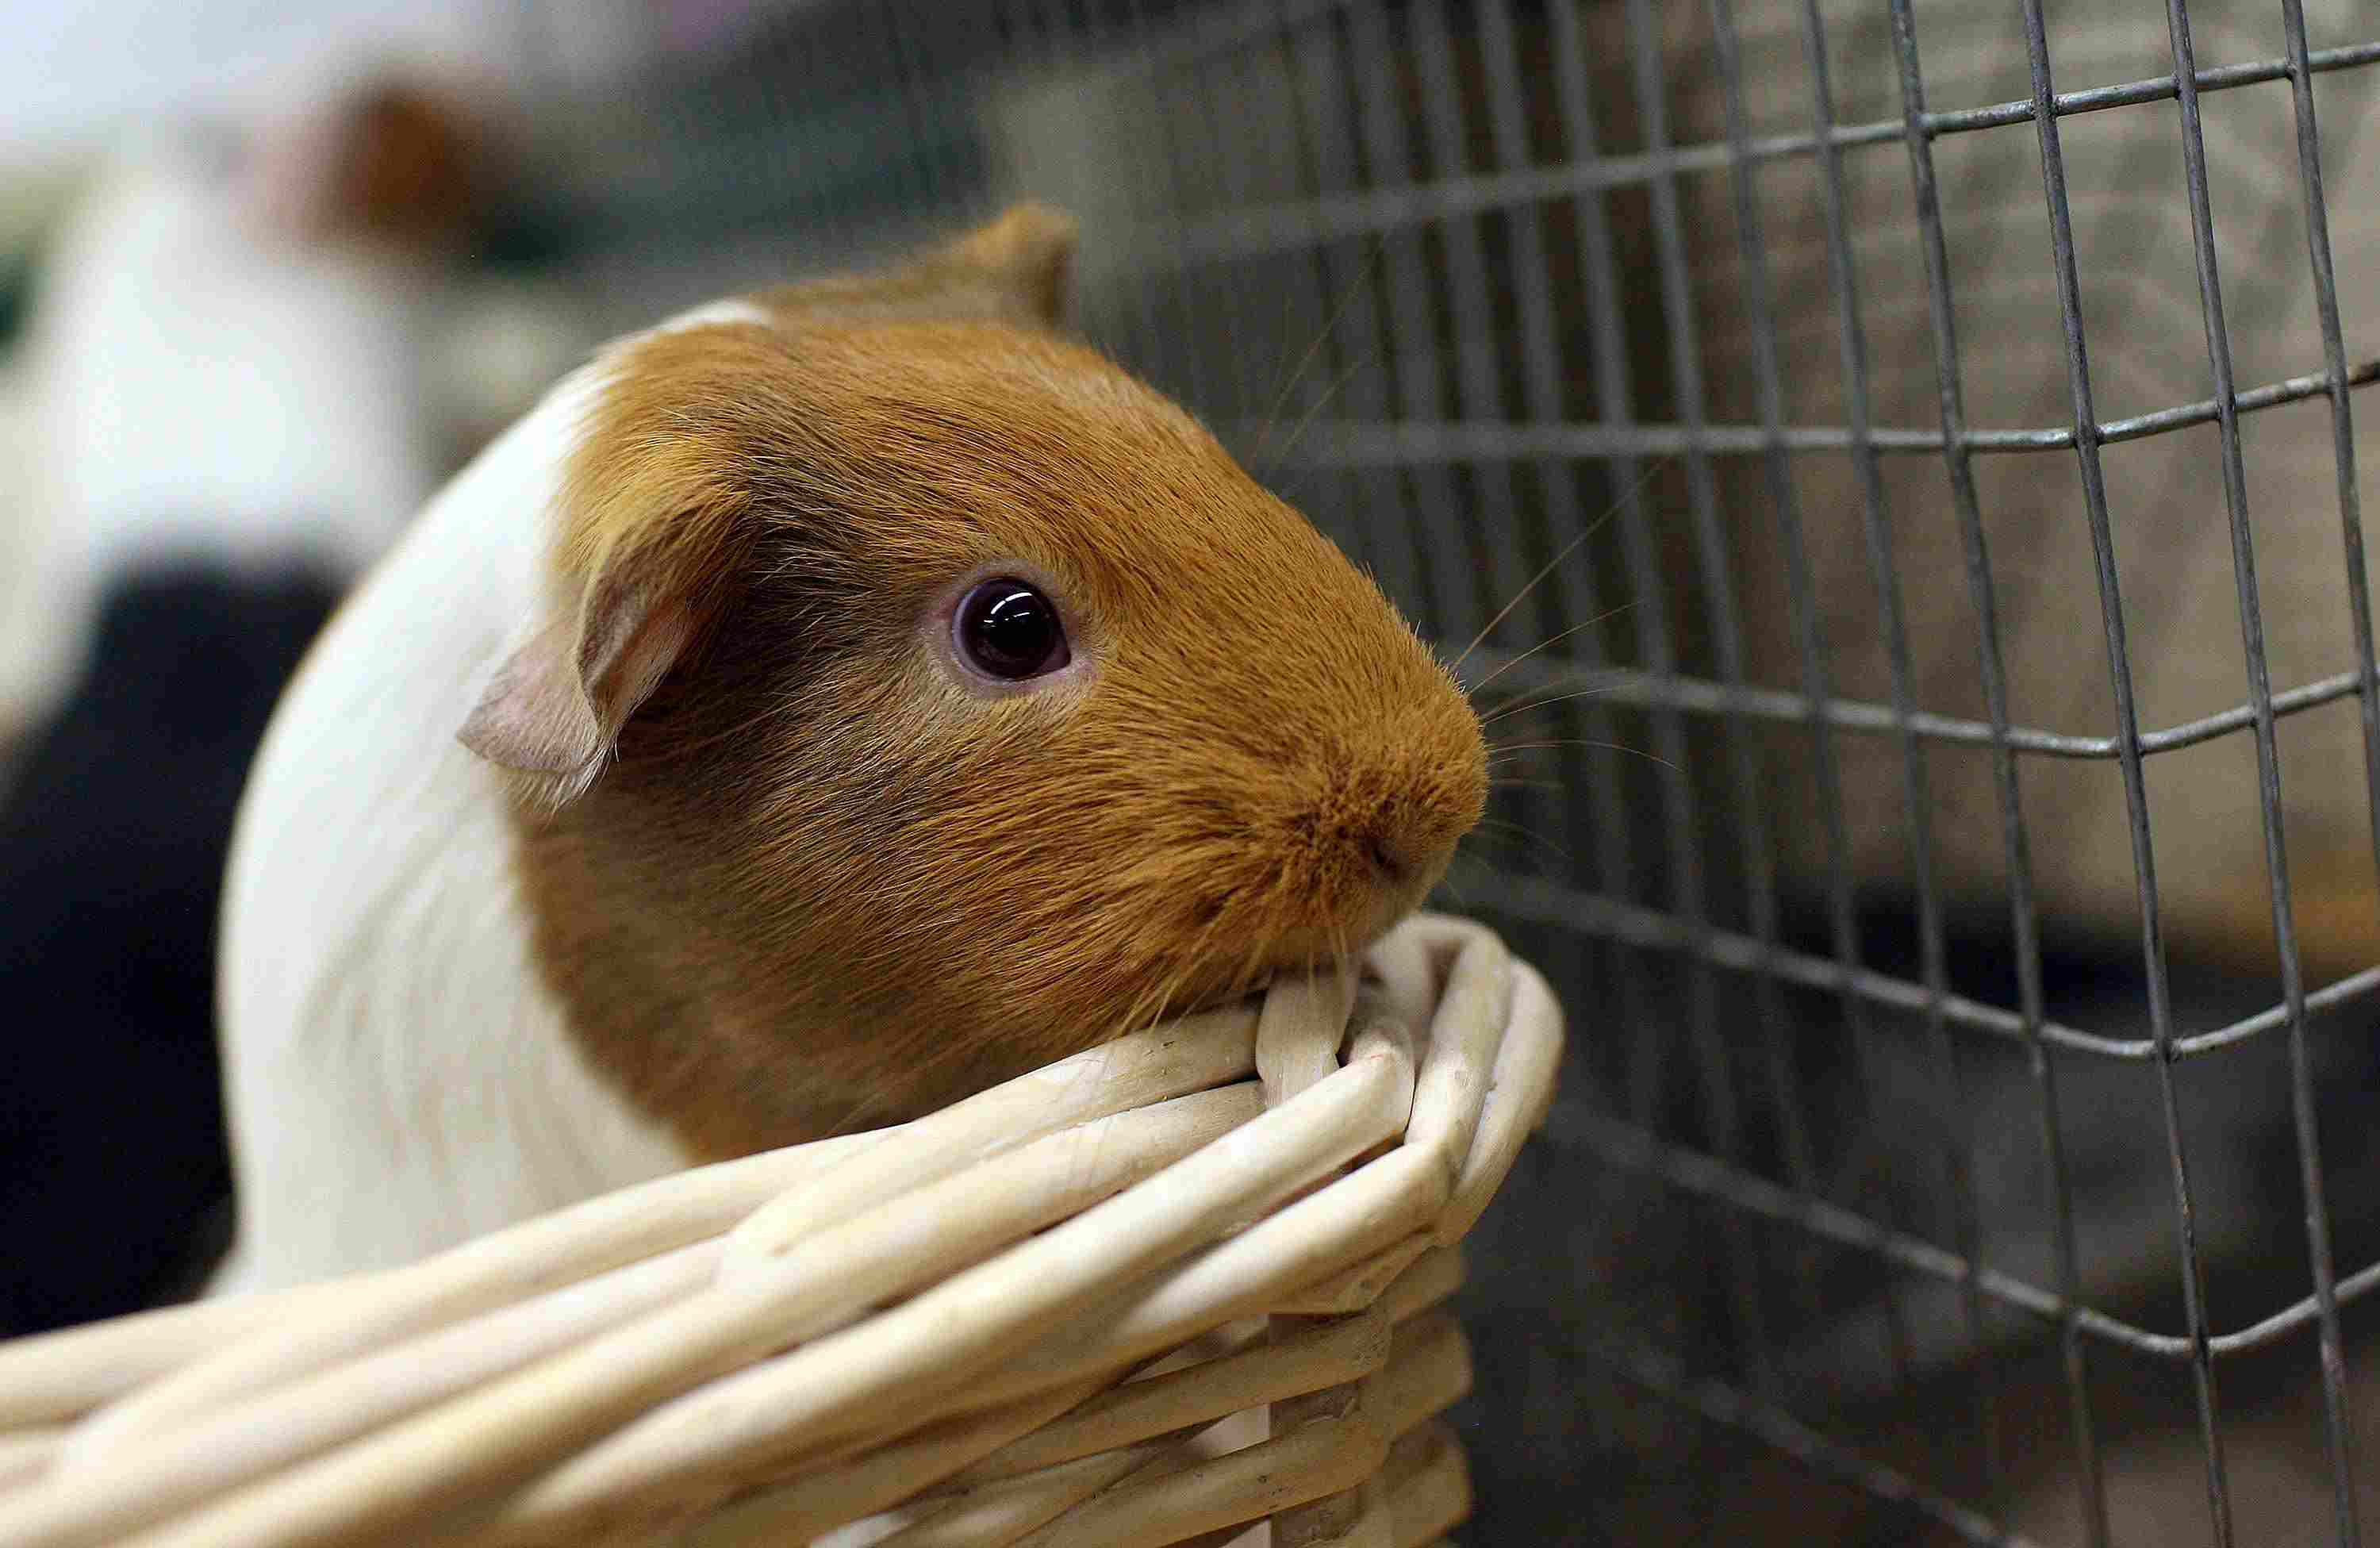 Guinea pig in a basket